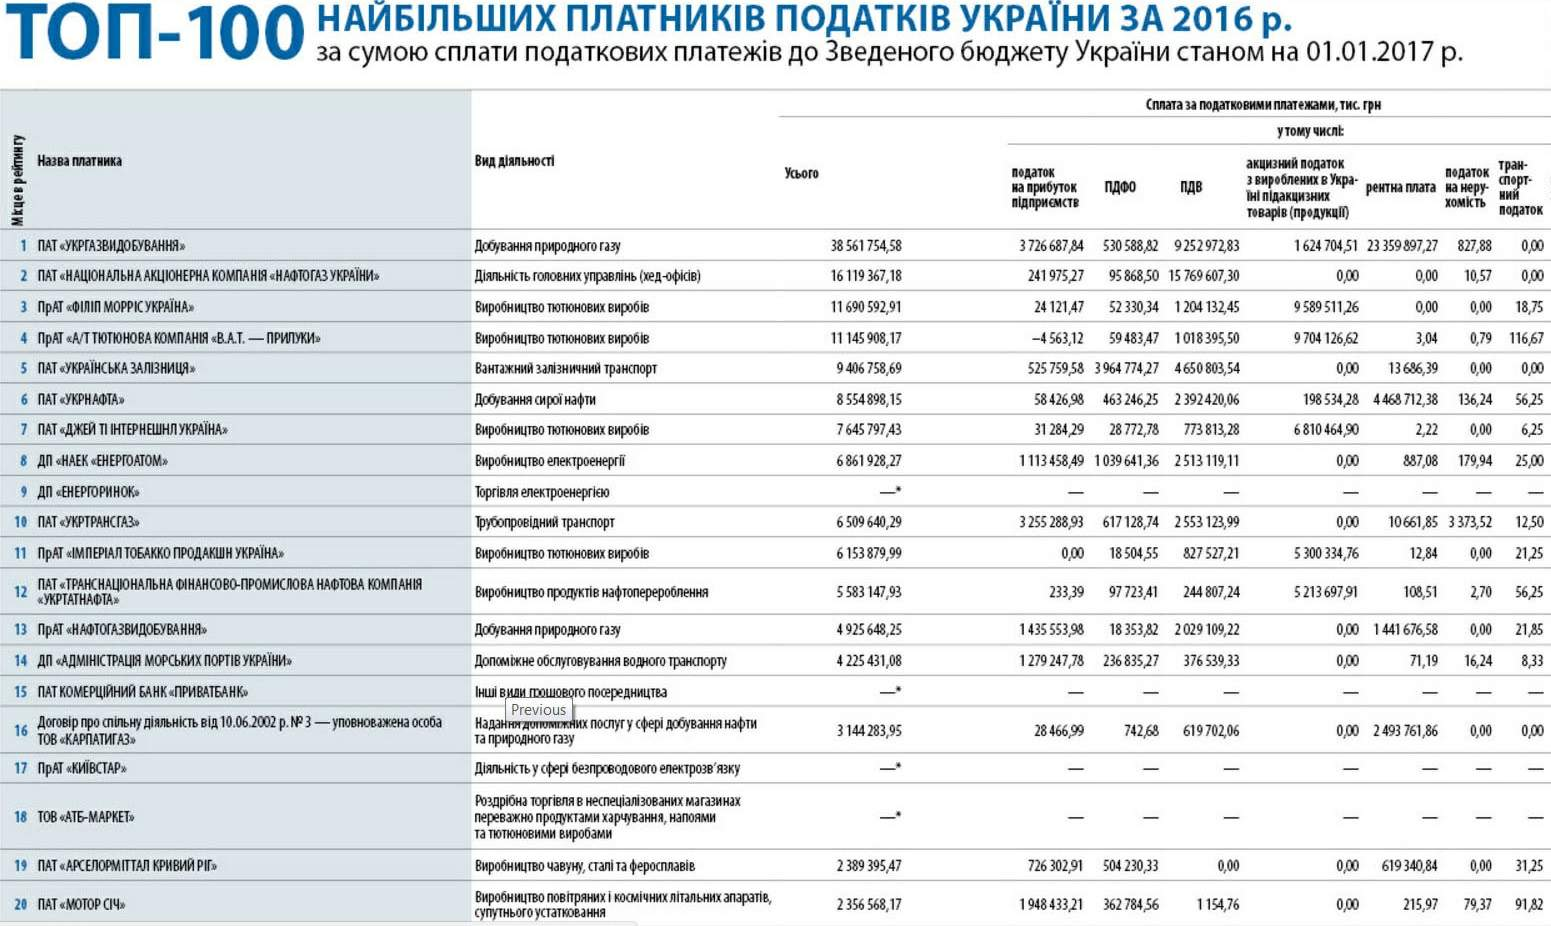 TOP-100 largest Taxpayers of Ukraine for 2016 as per contributions made to the Consolidated budget of Ukraine as of 01.07.2017.